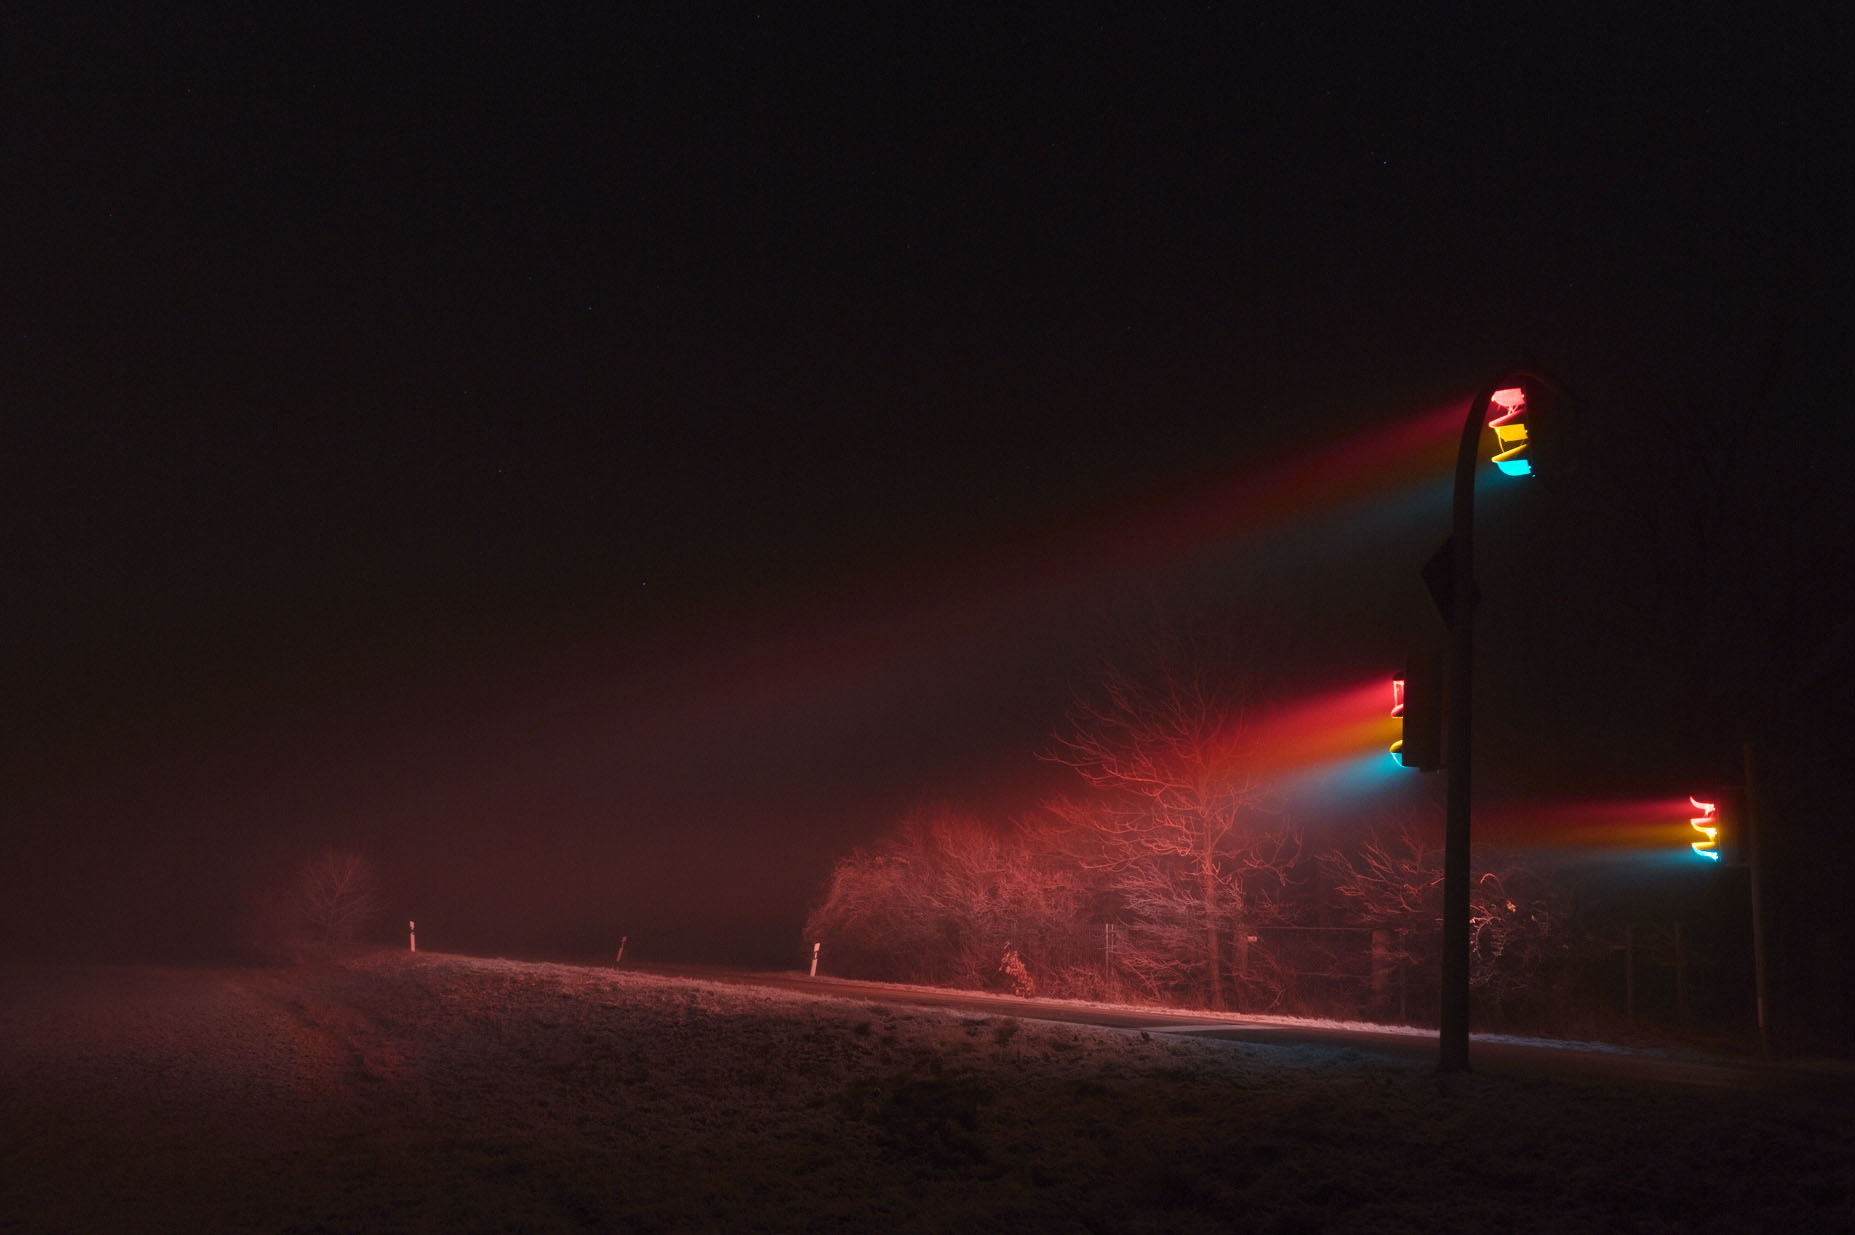 traffic_lights_06